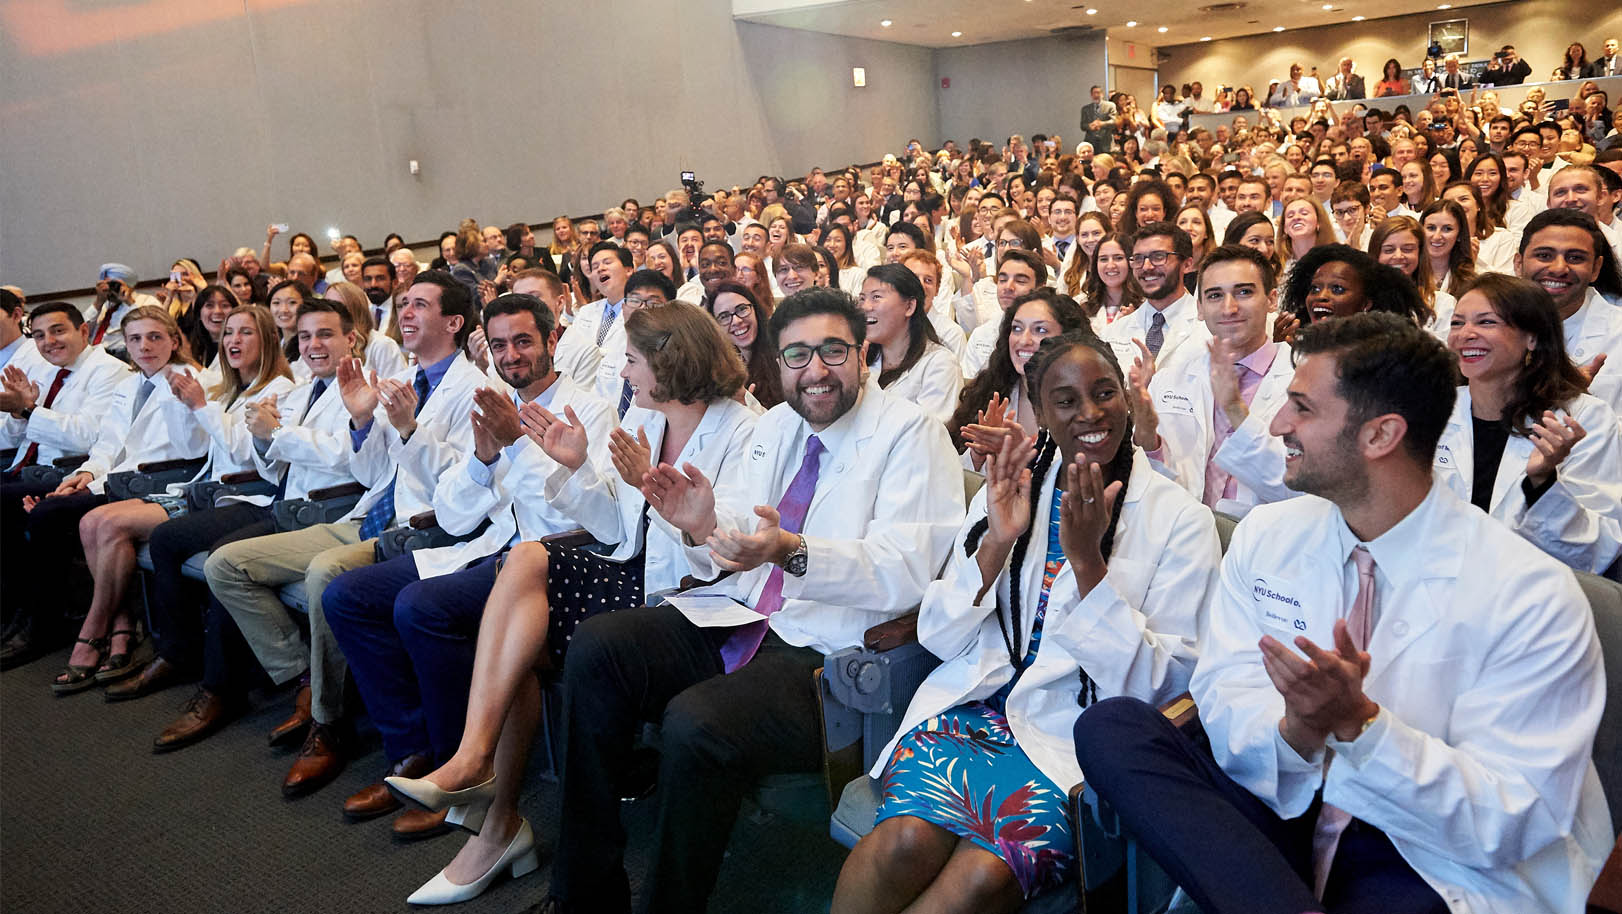 Robert I. Grossman, MD at the NYU School of Medicine graduation supporting scholarships that affords a full ride to NYU Schol of Medicine.